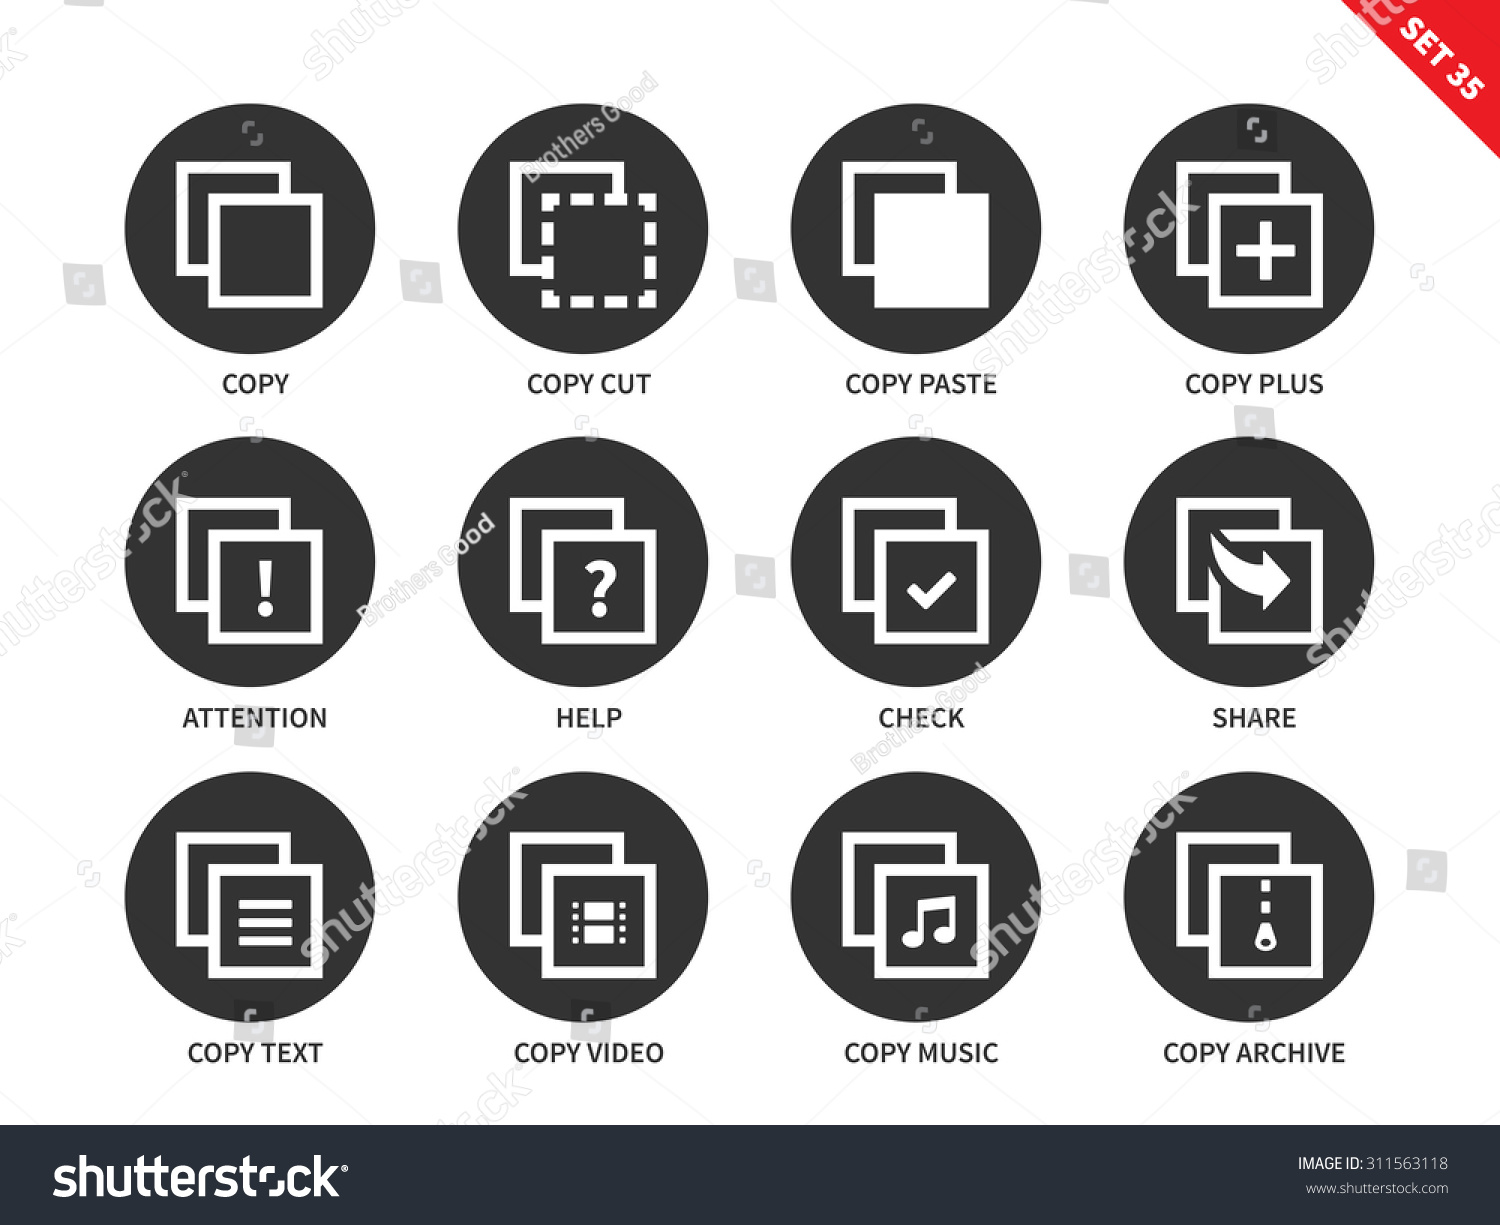 Copy files vector icons set computing stock vector 311563118 copy files vector icons set computing and technology concept icons for apps presentations buycottarizona Images